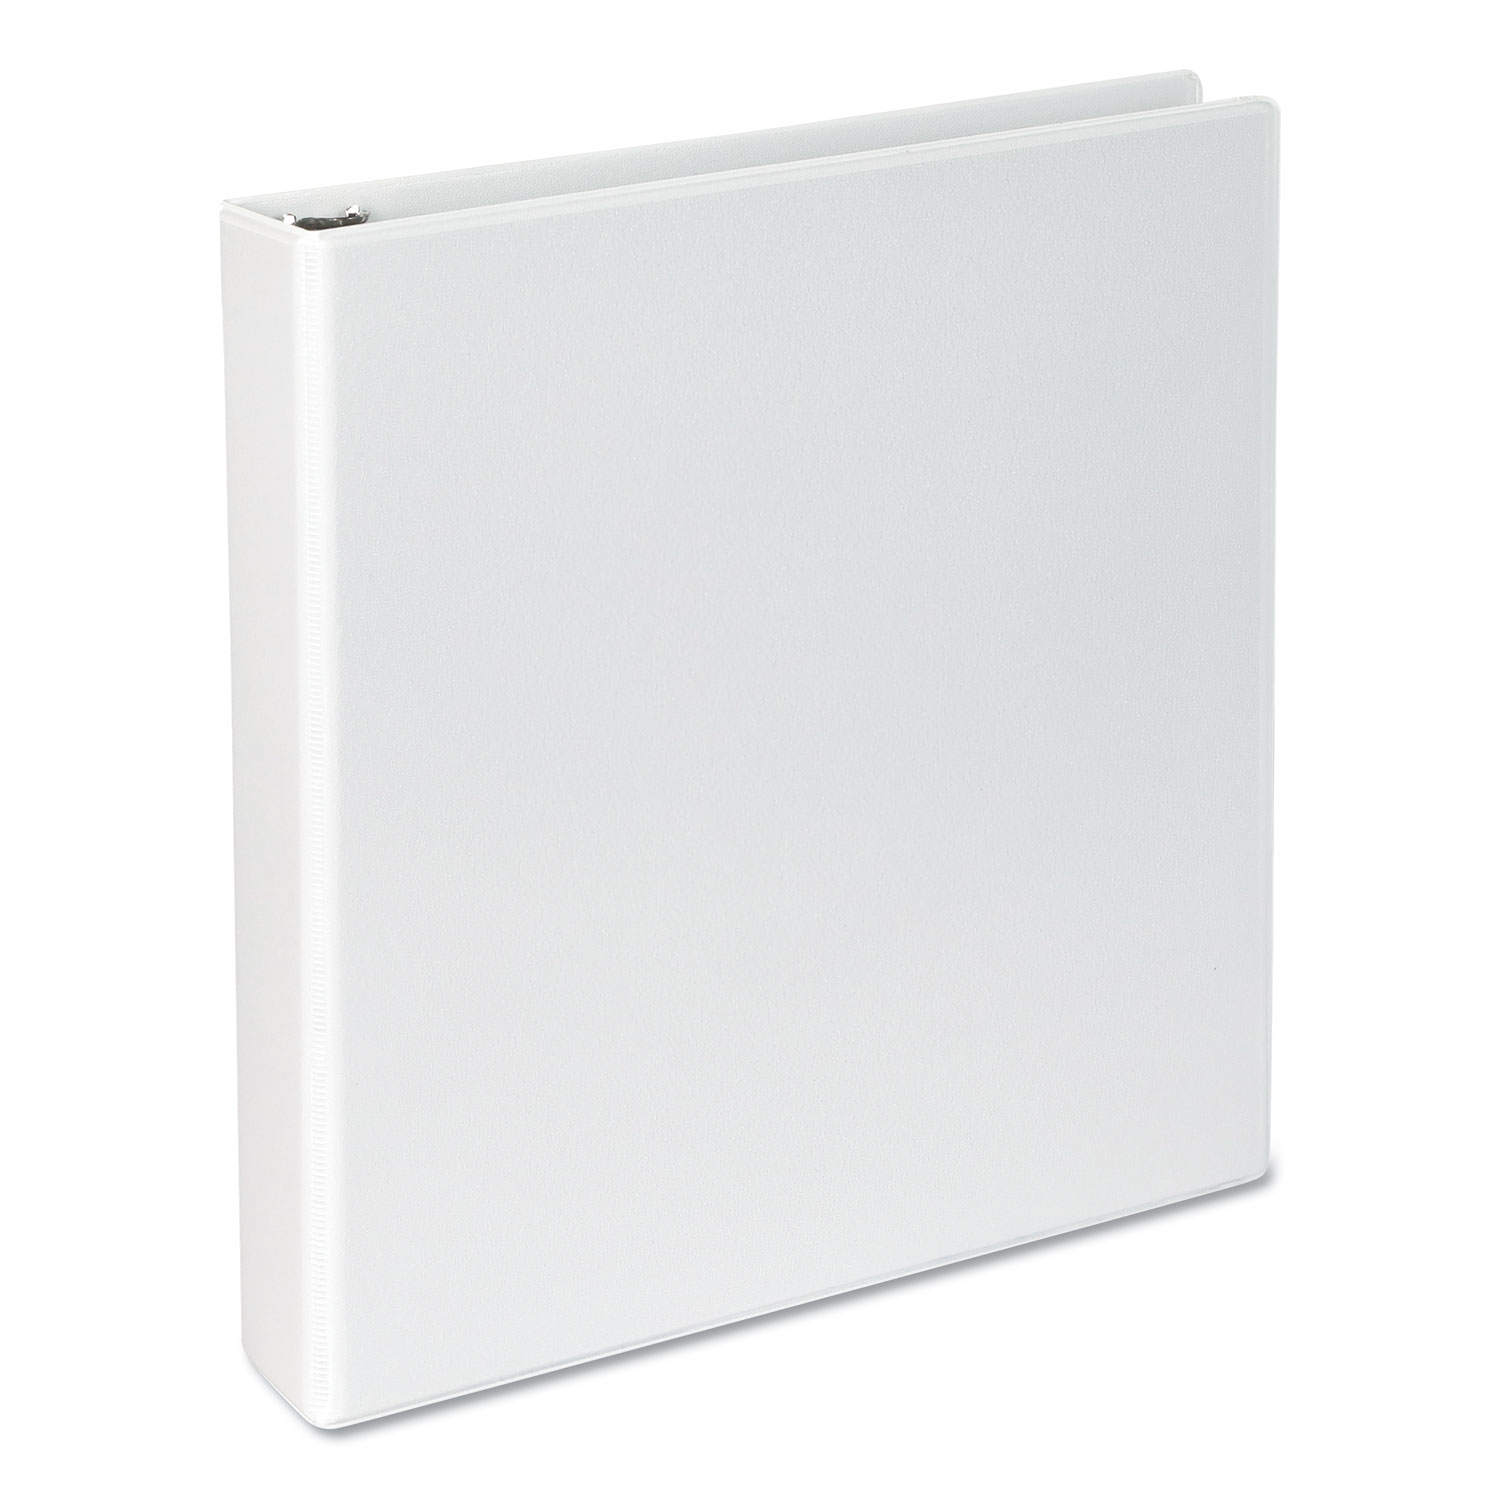 "Slant-Ring View Binder, 3 Rings, 1.5"" Capacity, 11 x 8.5, White"